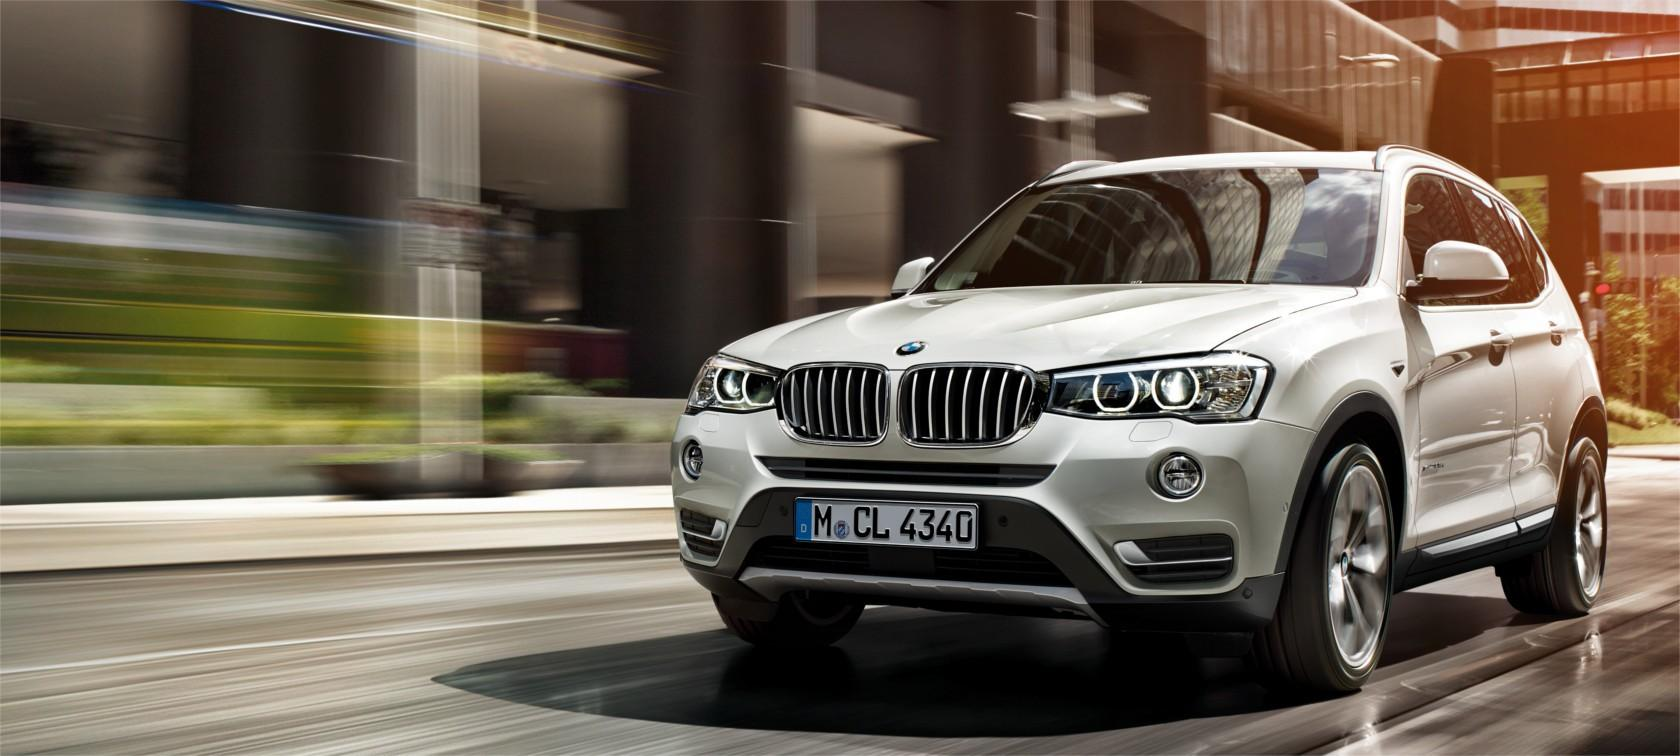 BMW X3 Wallpapers - Wallpaper Cave